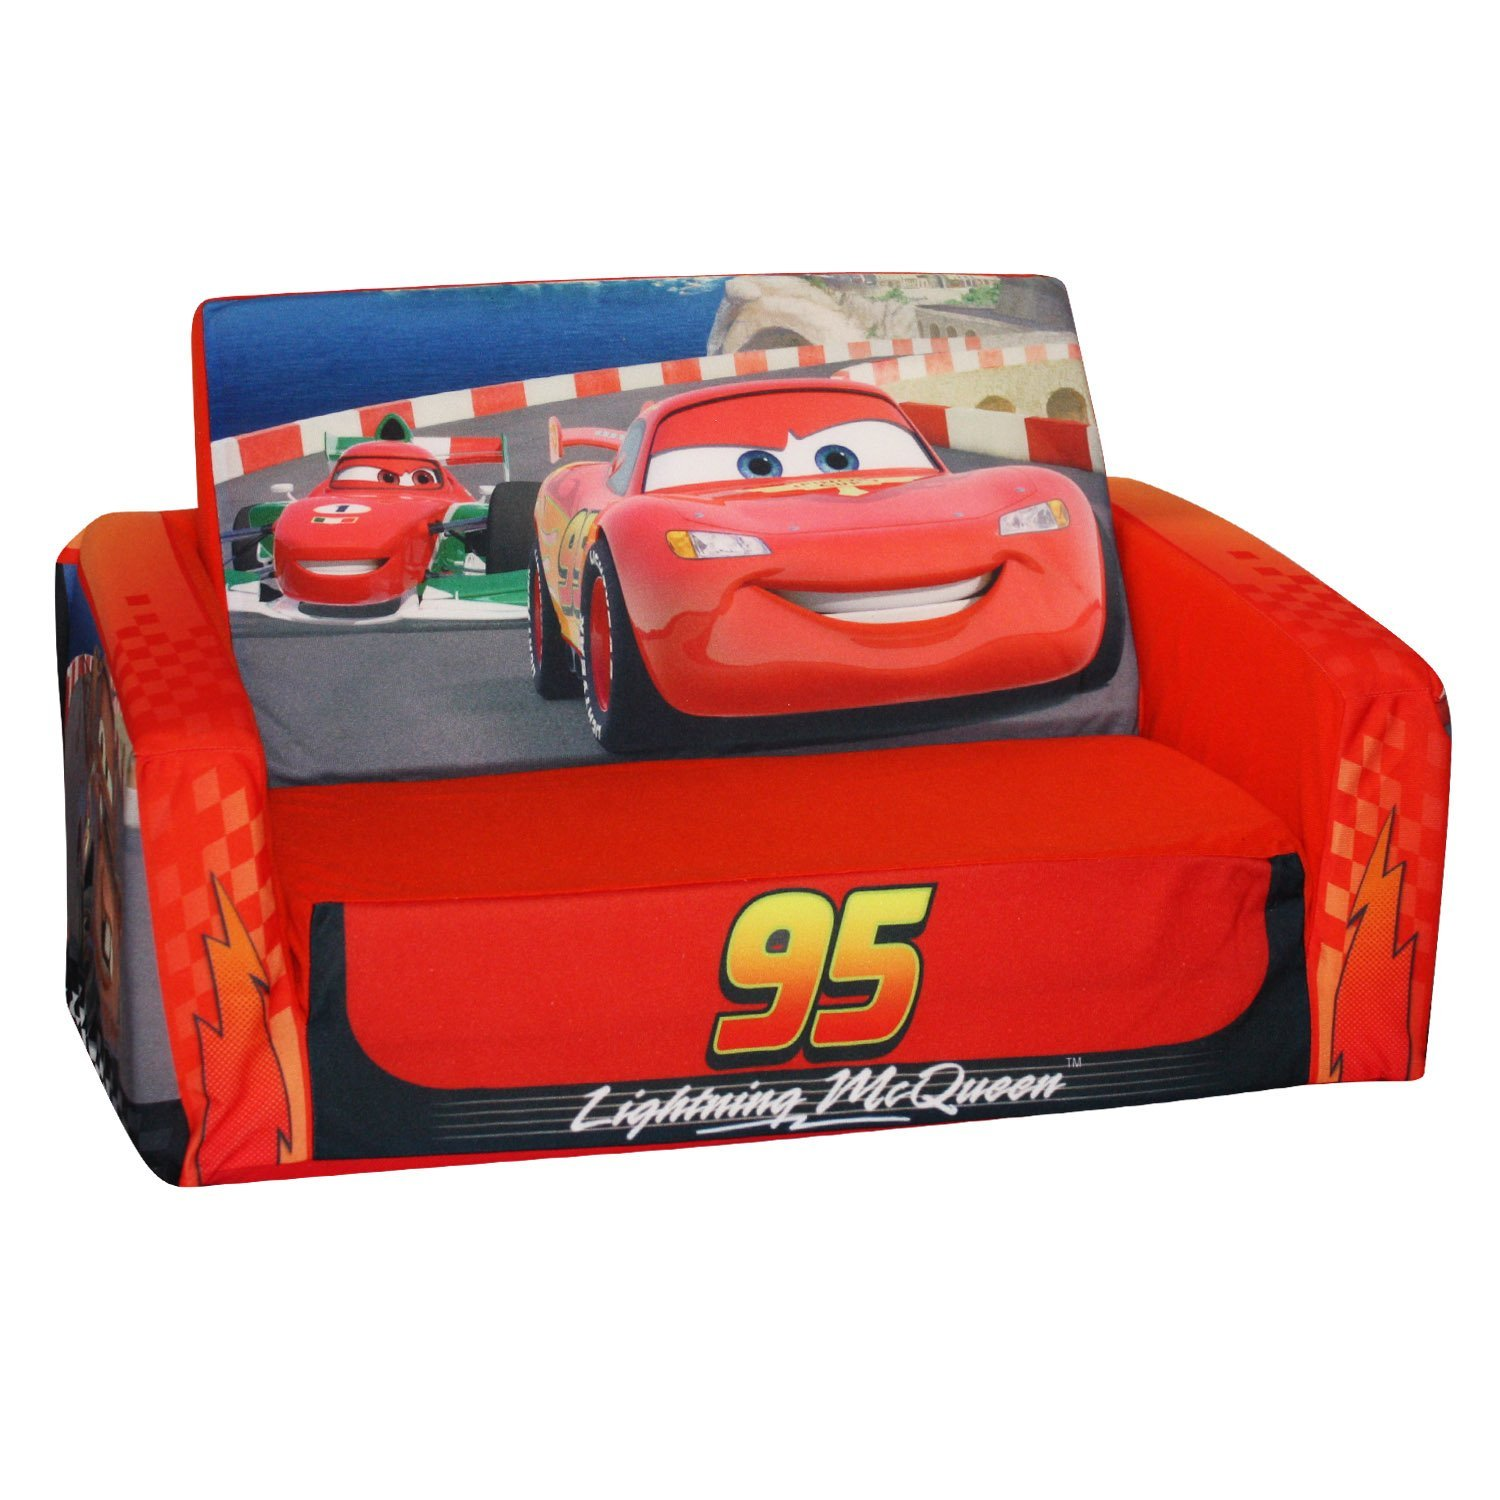 sofa bed for child l shape covers online india fun beds kids and teens christmas gifts